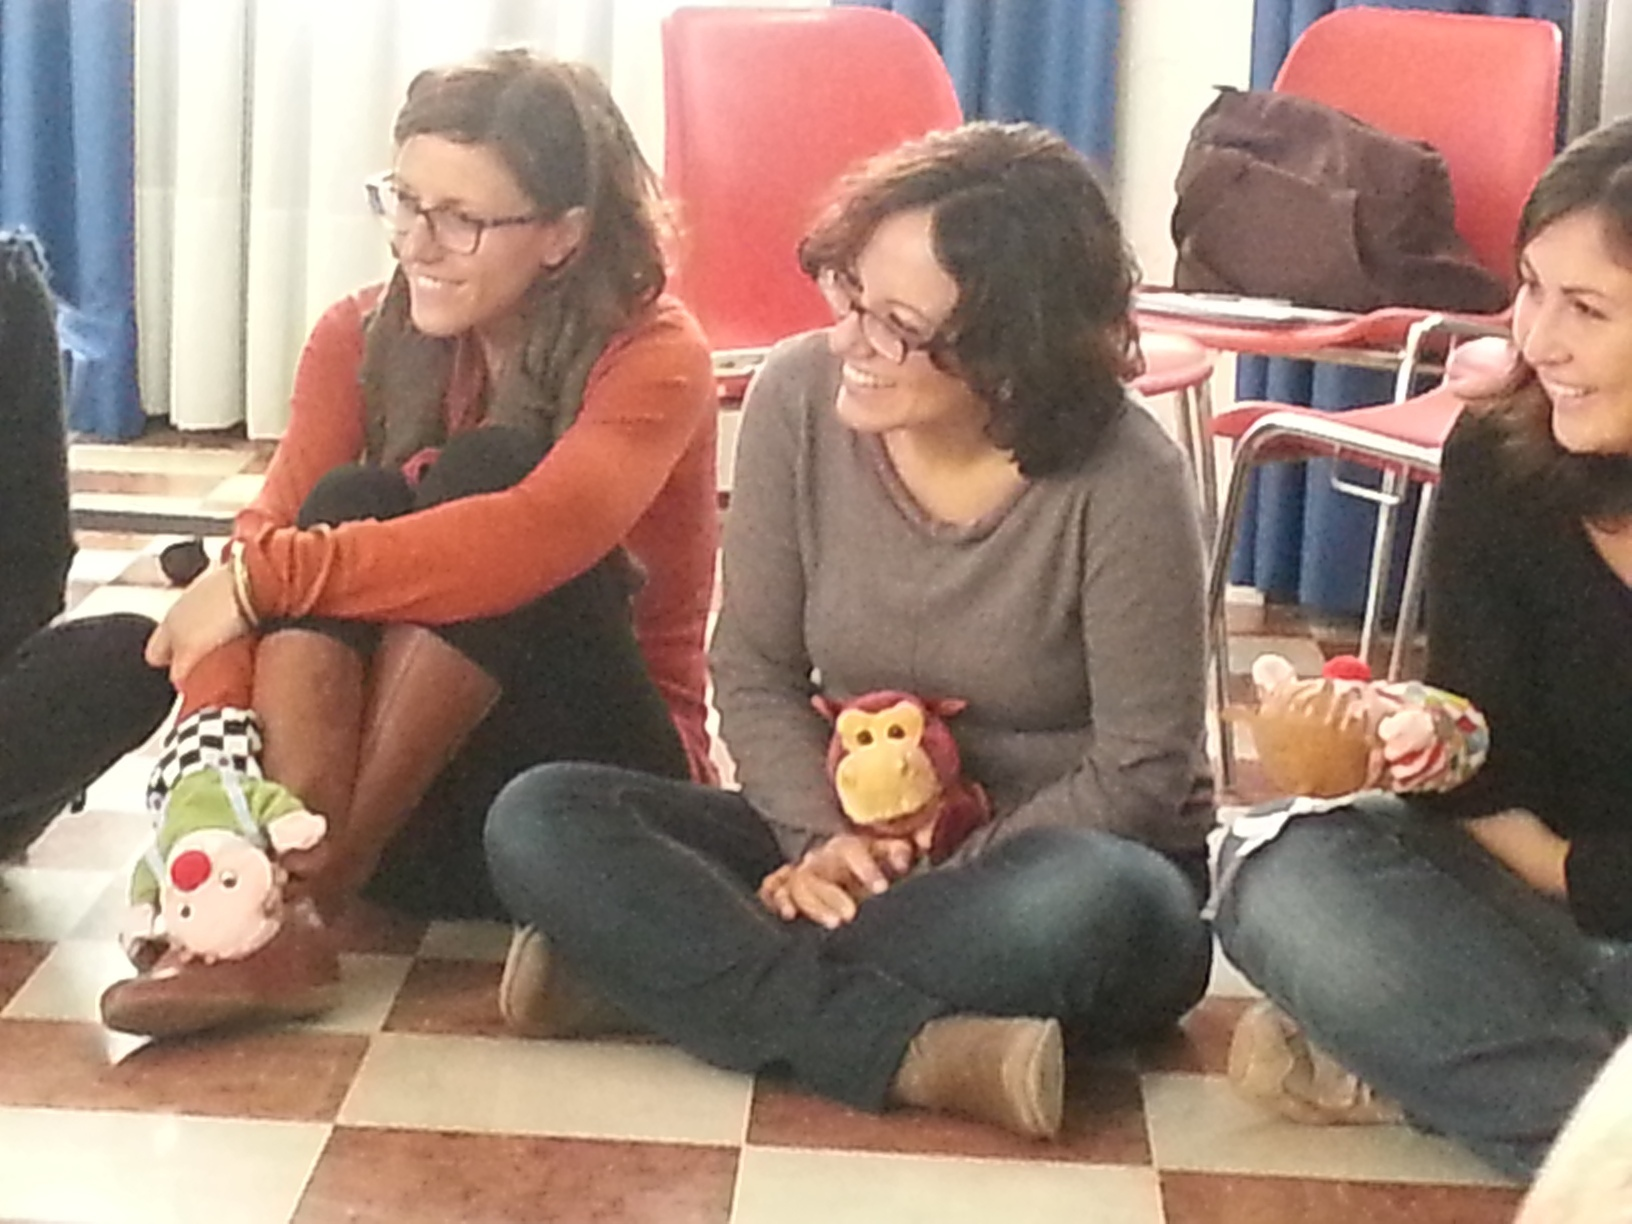 gestalt play therapy venezia 13 14 training lynn giandomenico bagatin psicologia psicoterapia bambini